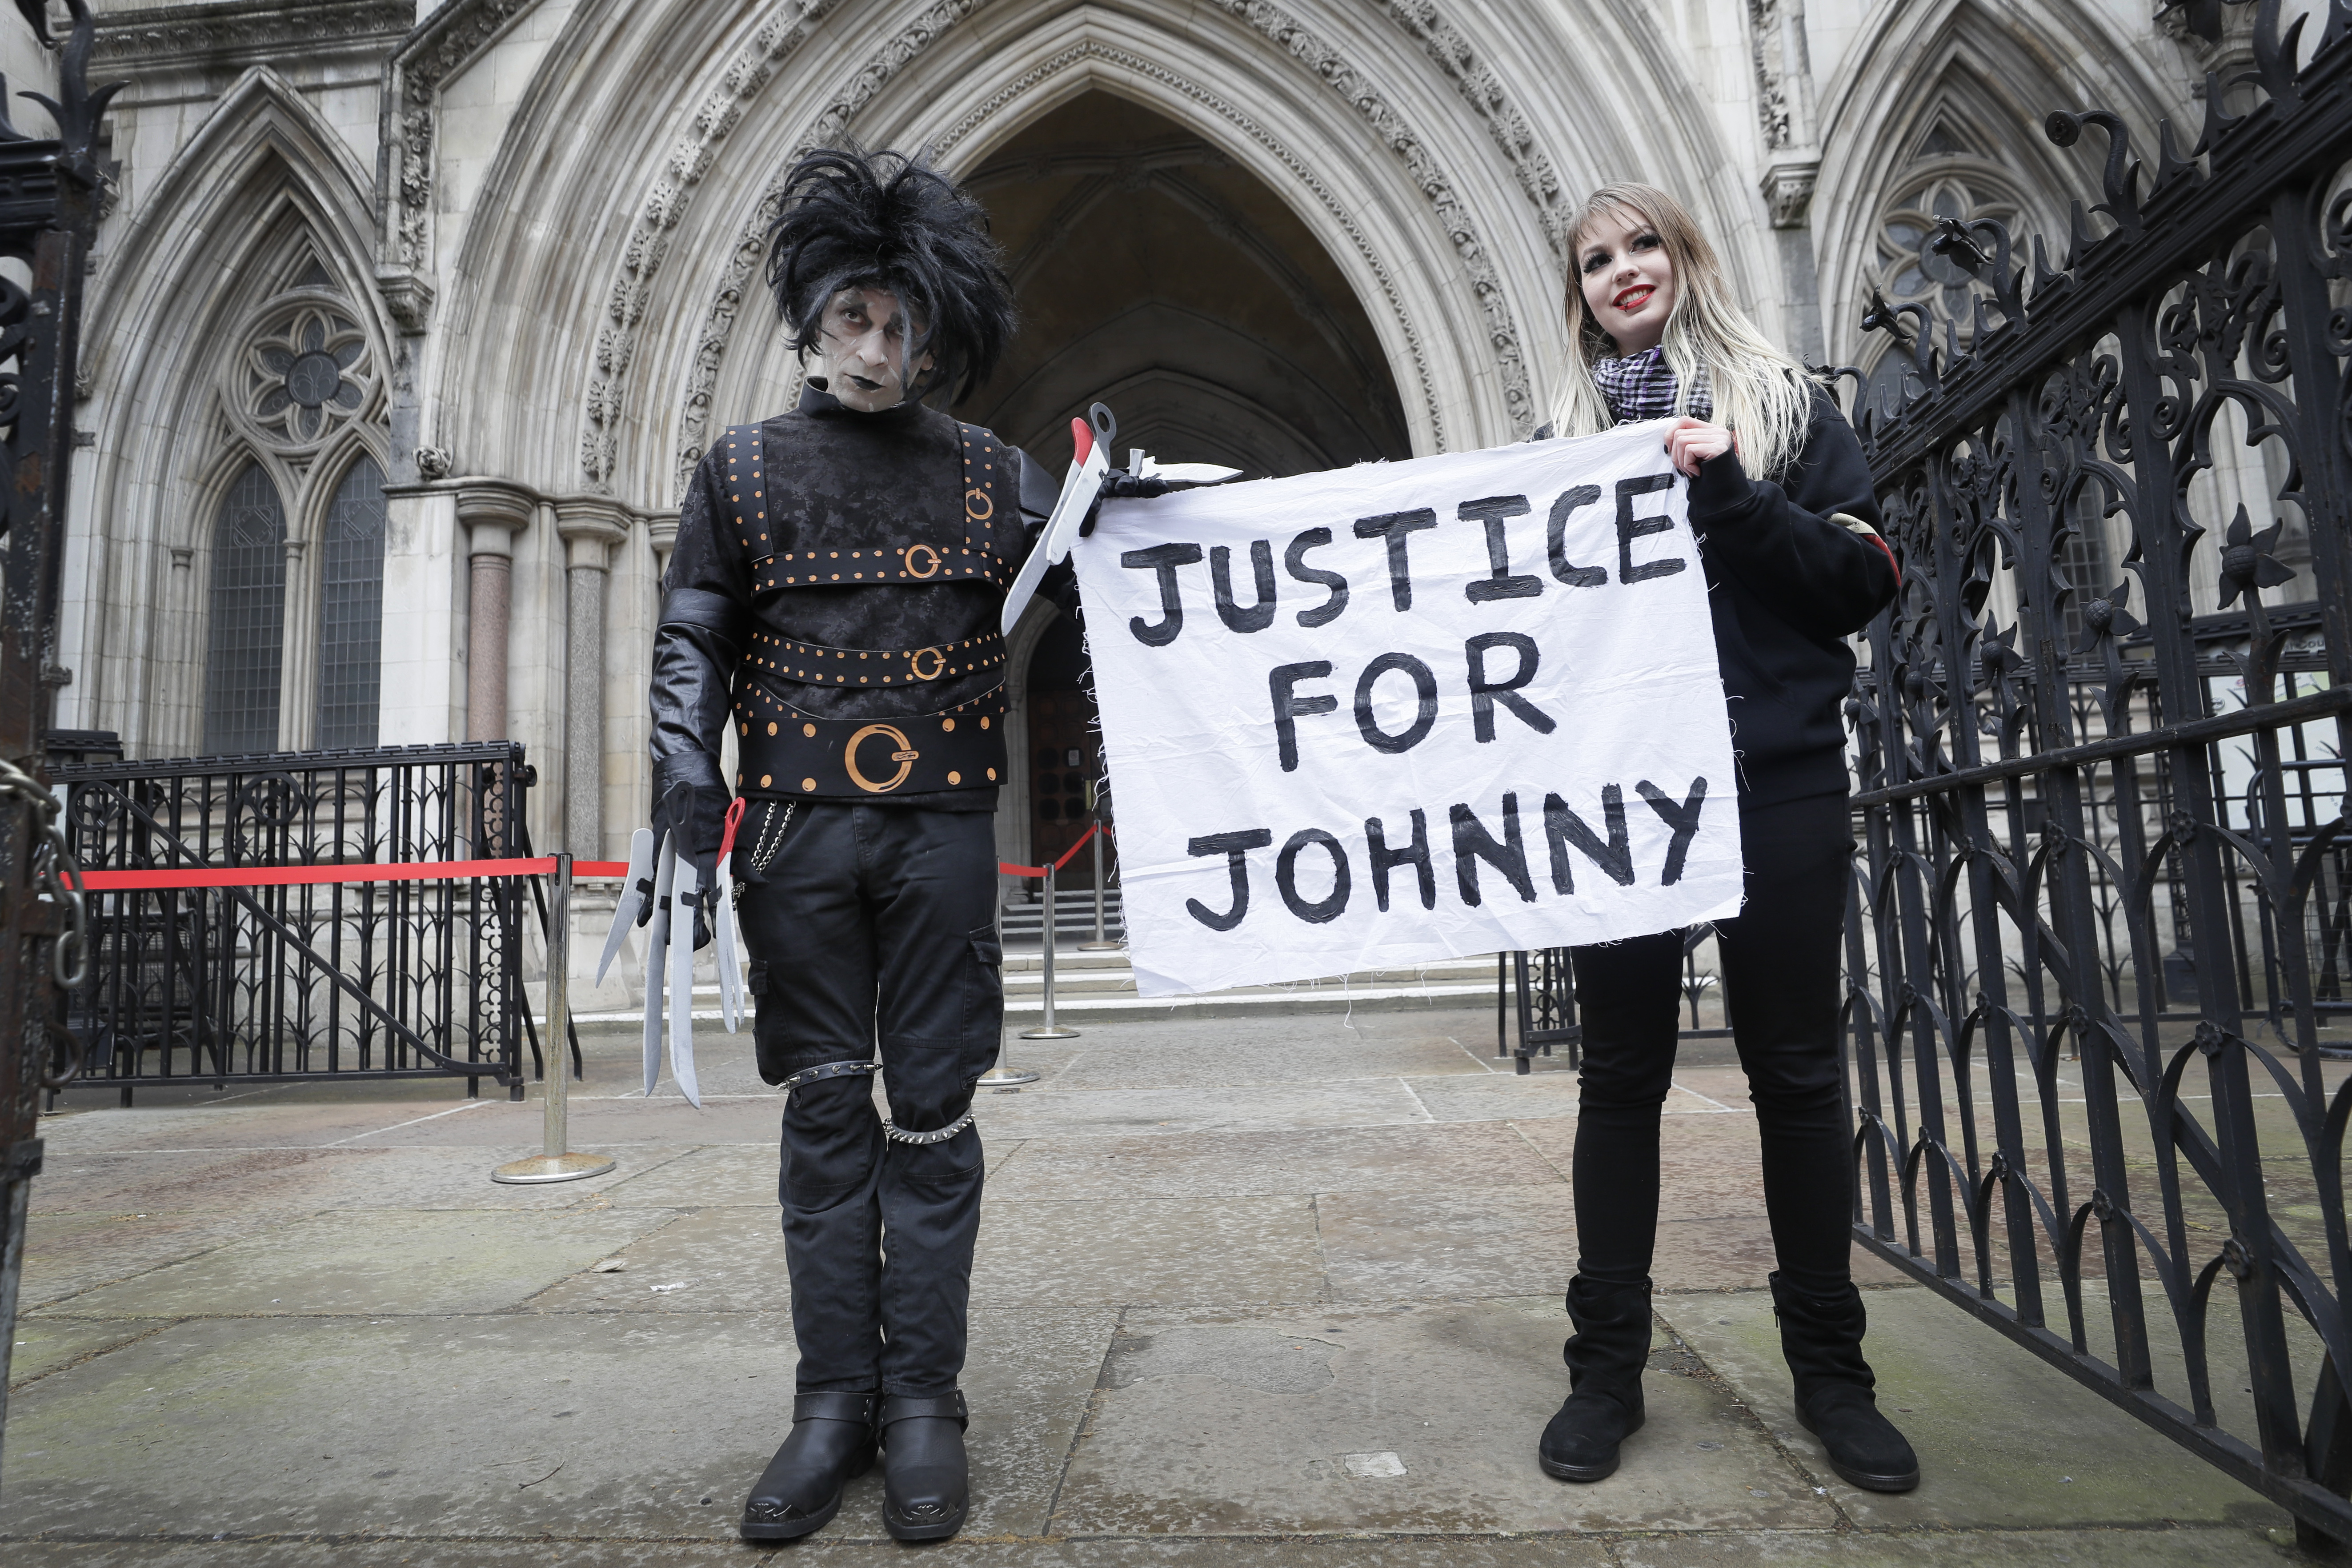 <p>Johnny Depp supporters hold a banner outside the High Court in London, Thursday, March 18, 2021. Johnny Depp's bid to overturn a damning ruling that he assaulted his ex-wife Amber Heard and put her in fear for her life will be considered by the Court of Appeal on Thursday.(AP Photo/Kirsty Wigglesworth)</p>